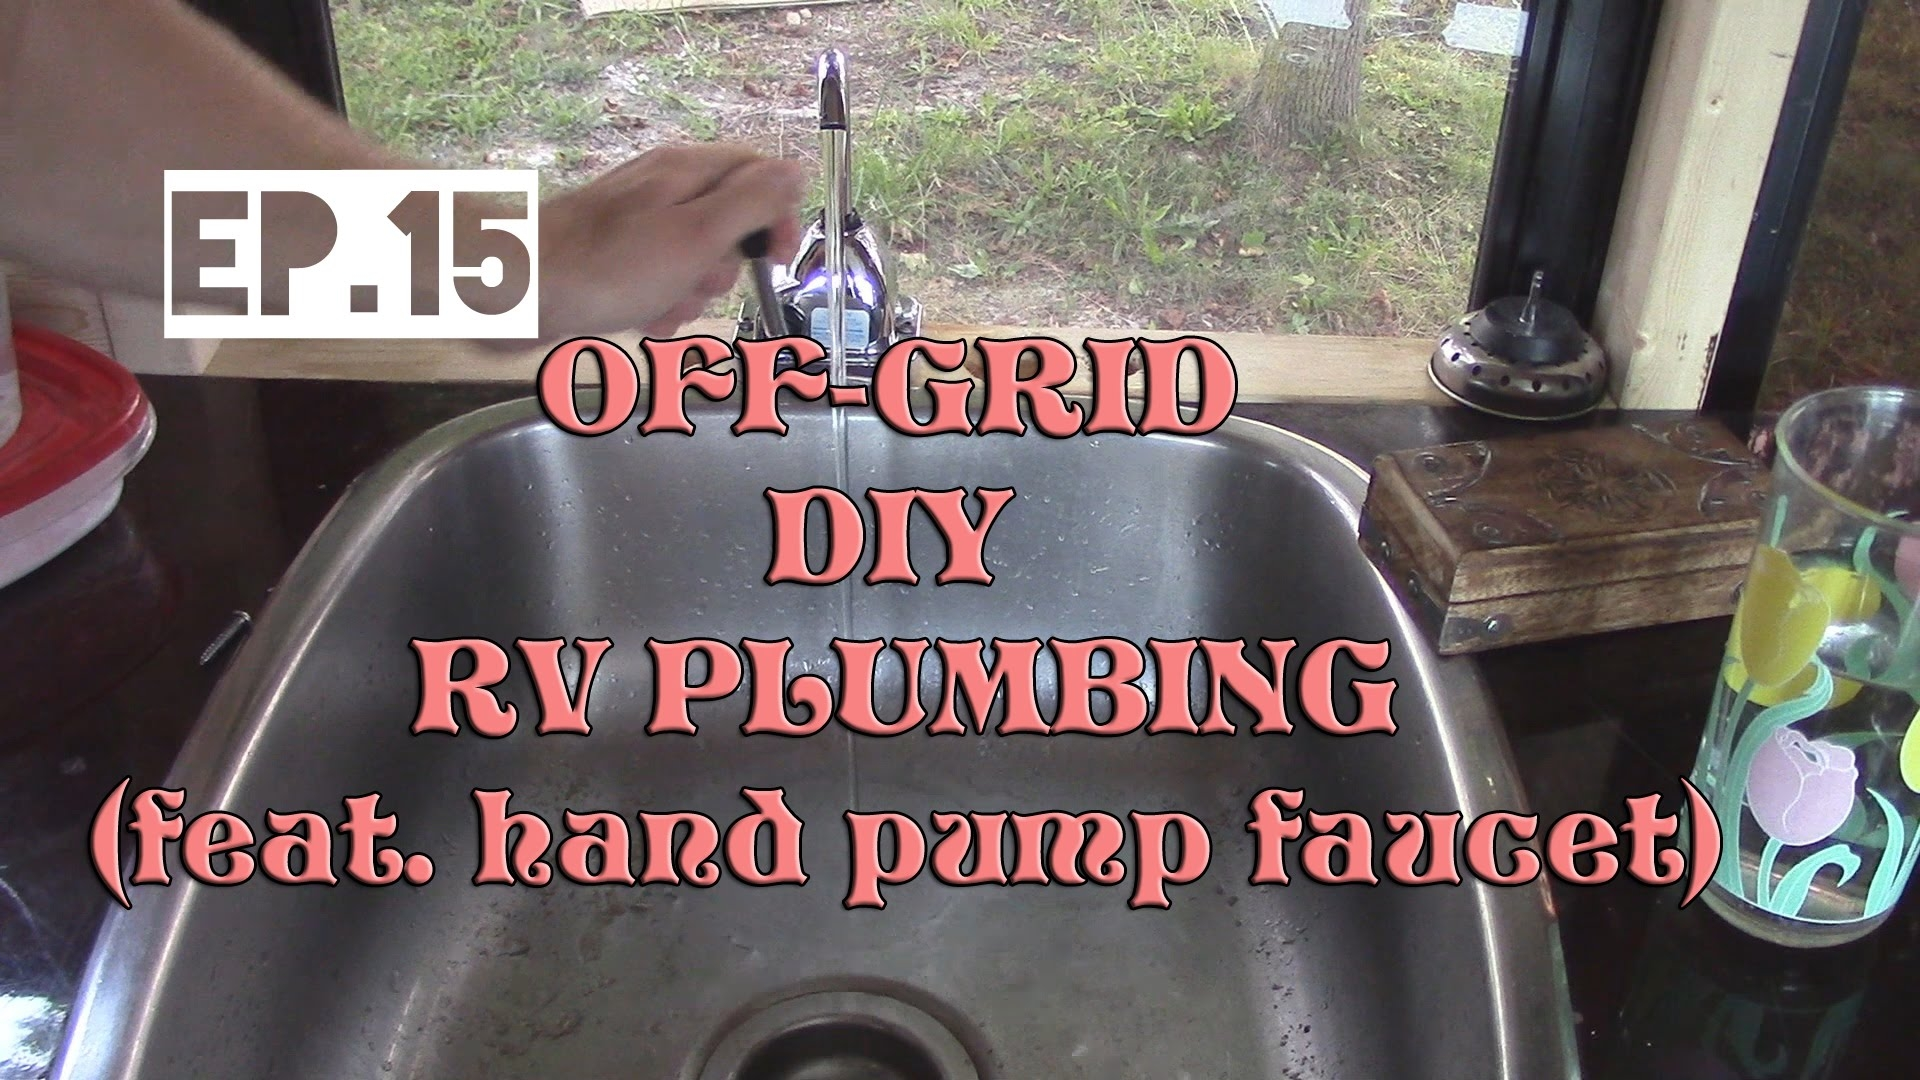 hand pump faucet rv hand pump faucet rv full time rv ep15 off grid plumbing with hand pump faucet and 1920 x 1080